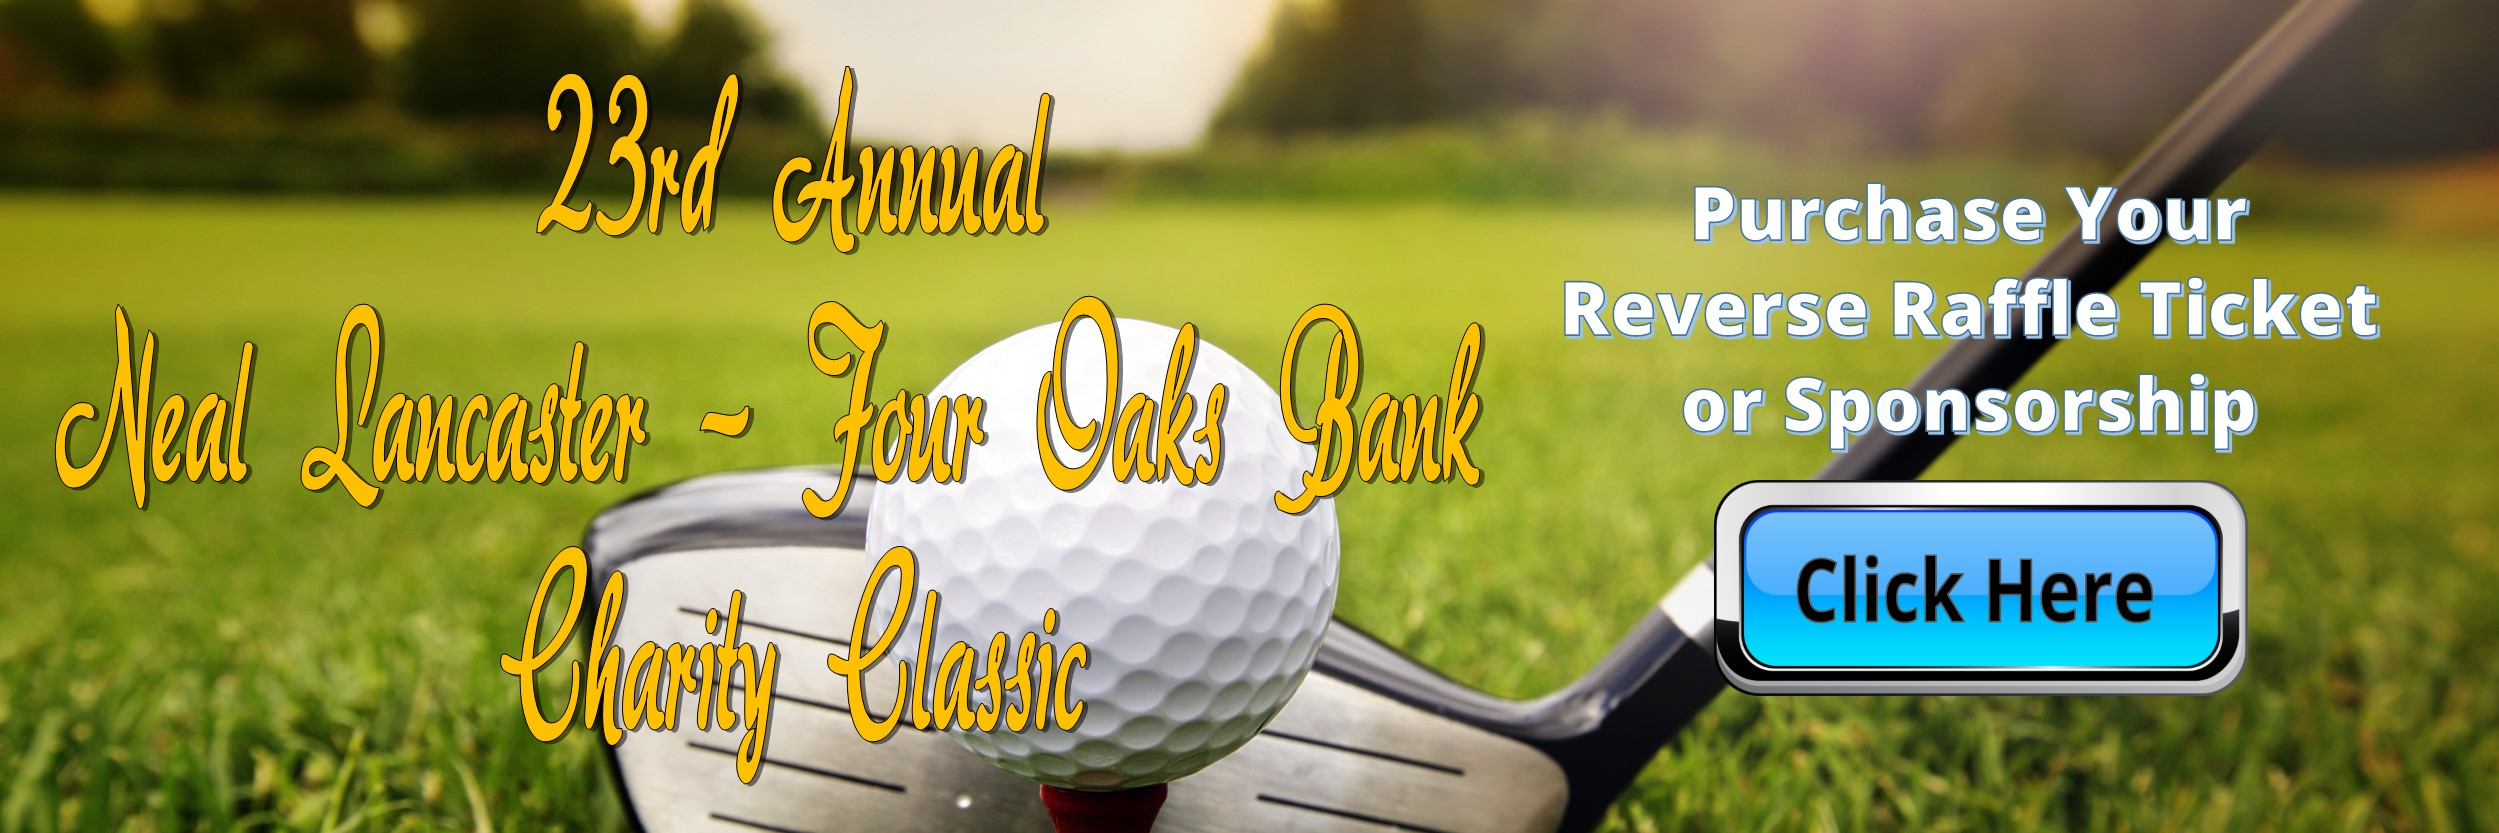 Annual Charity Classic